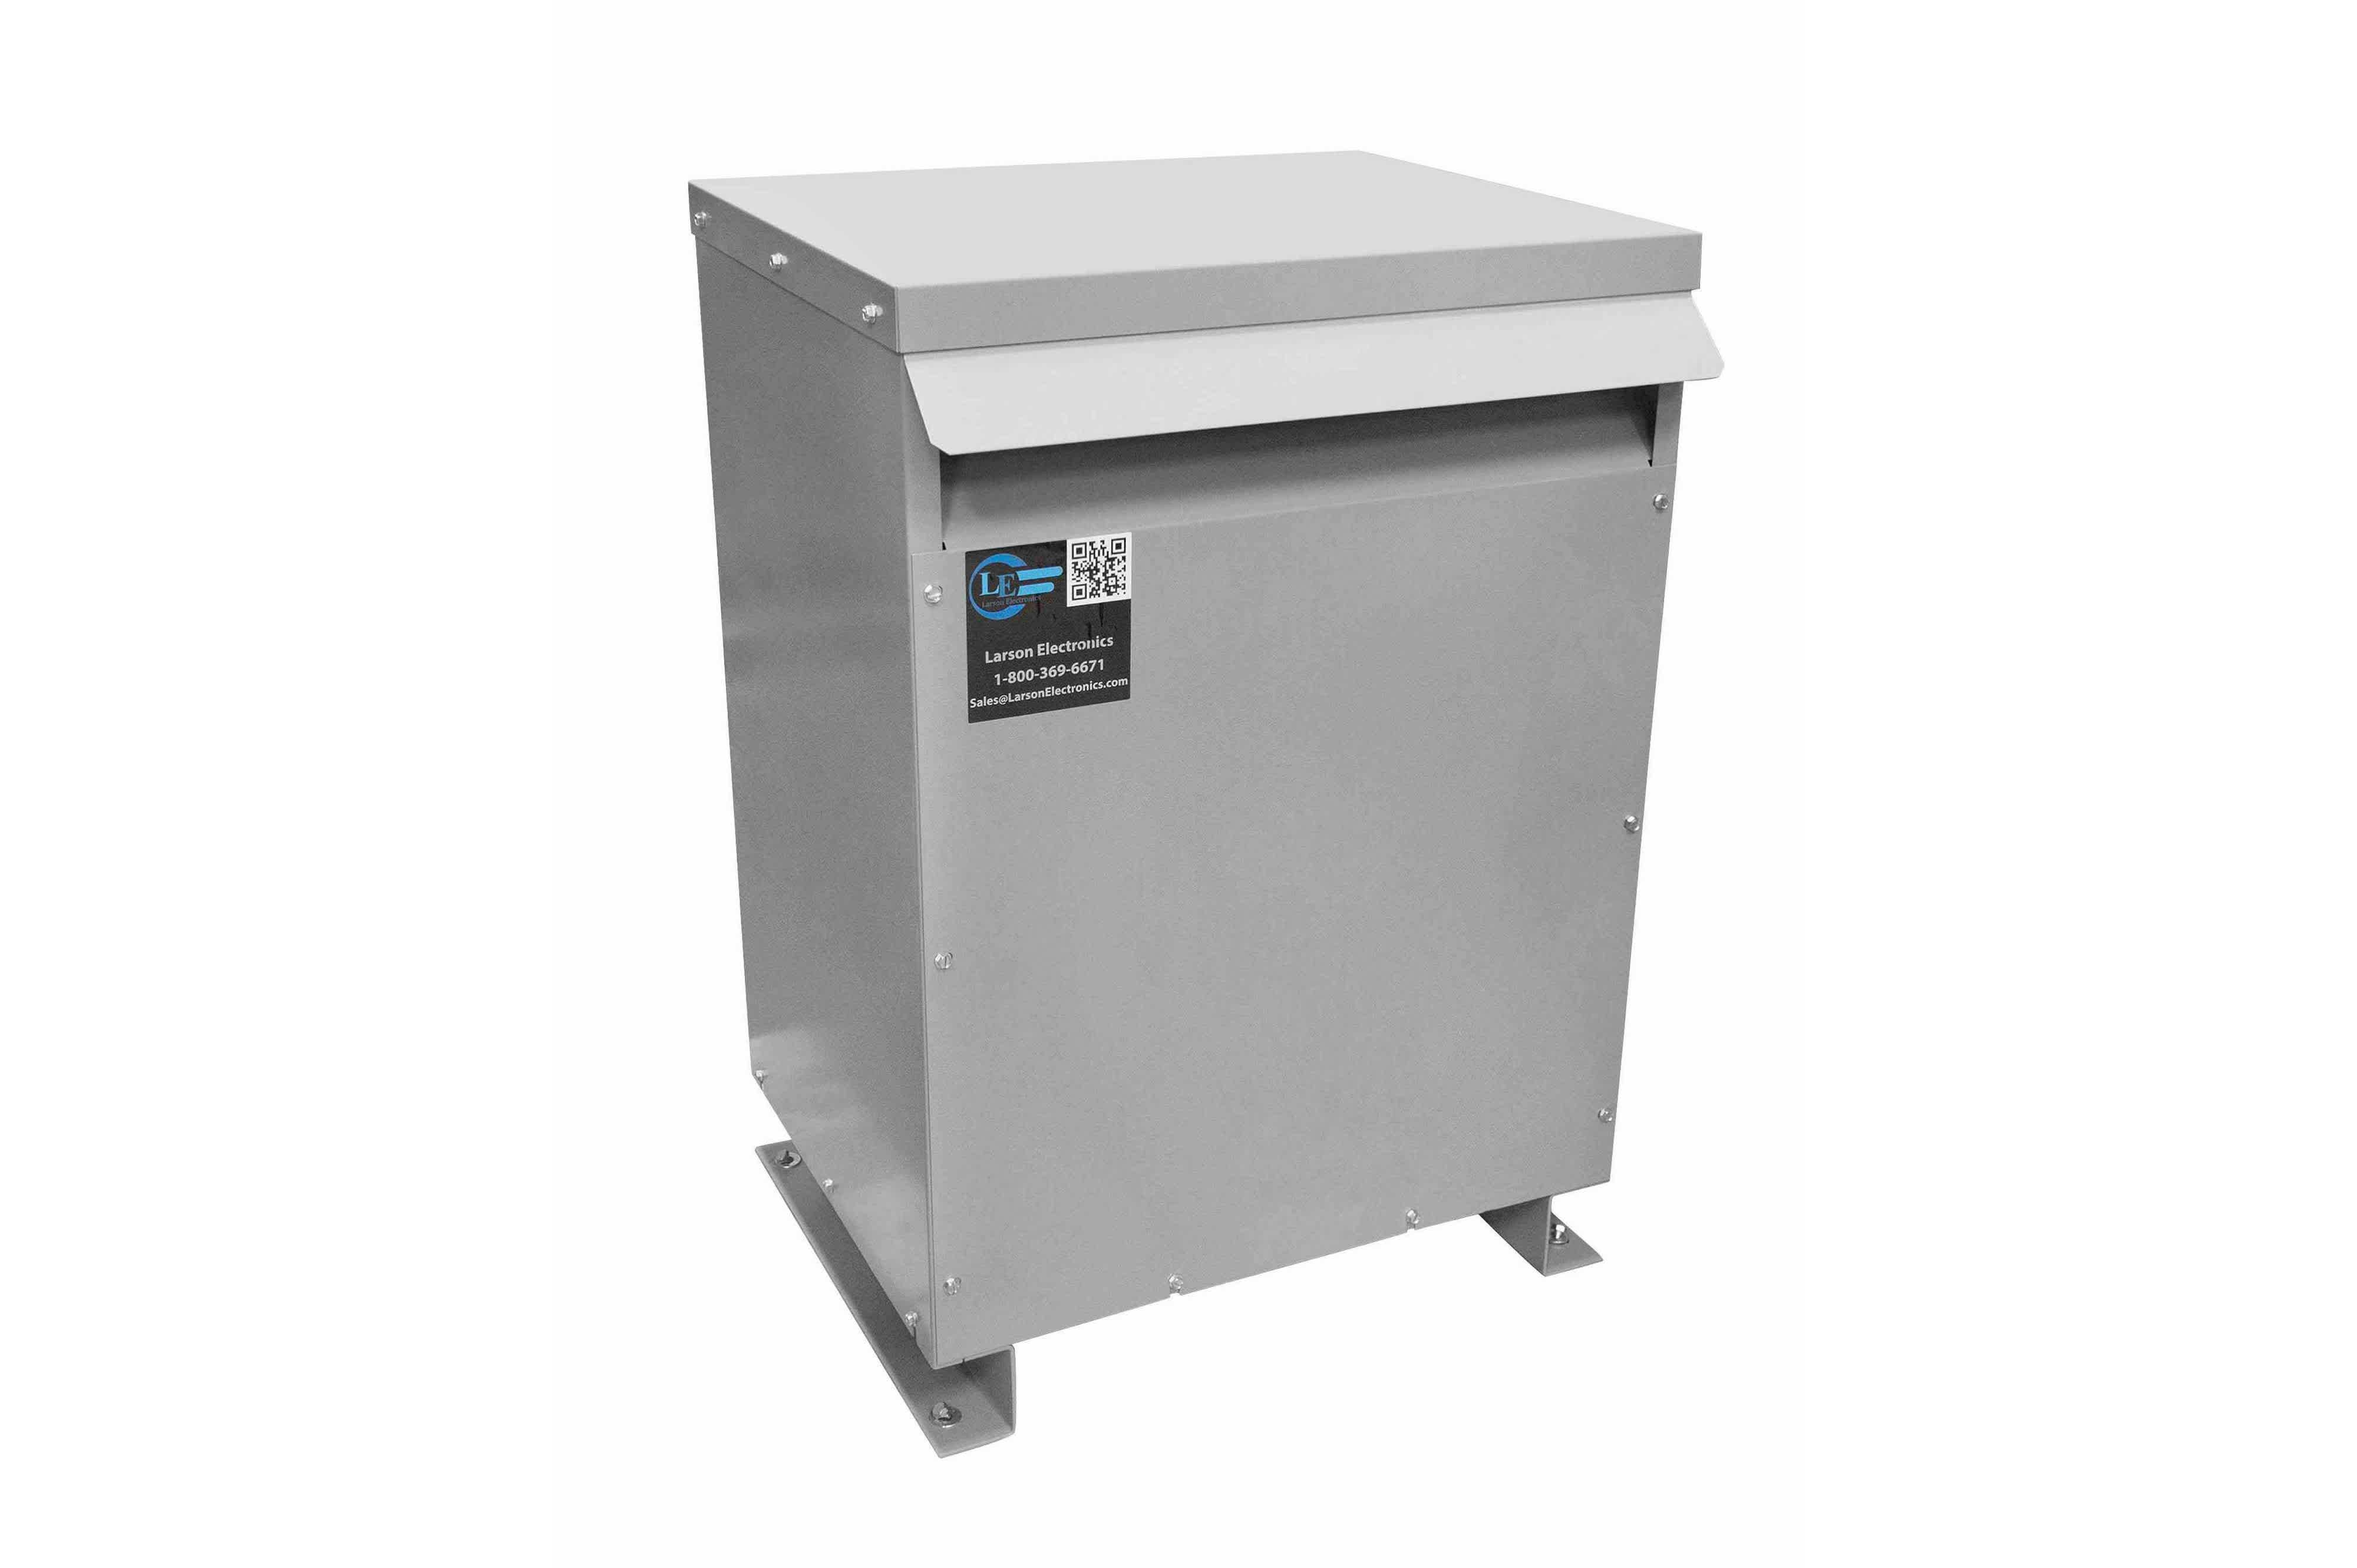 30 kVA 3PH DOE Transformer, 460V Delta Primary, 208Y/120 Wye-N Secondary, N3R, Ventilated, 60 Hz